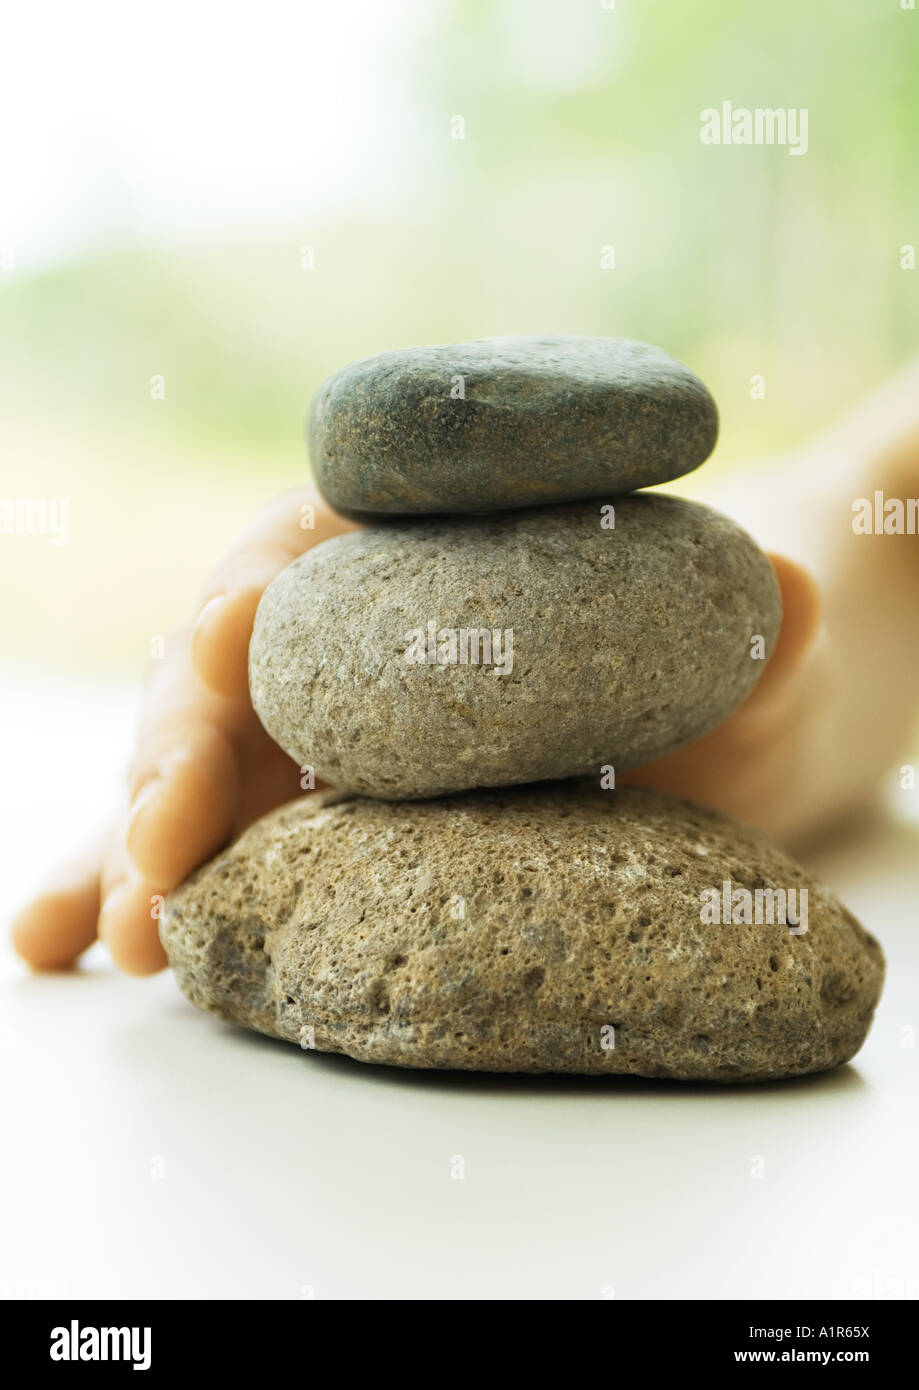 Hand touching stack of pebbles - Stock Image